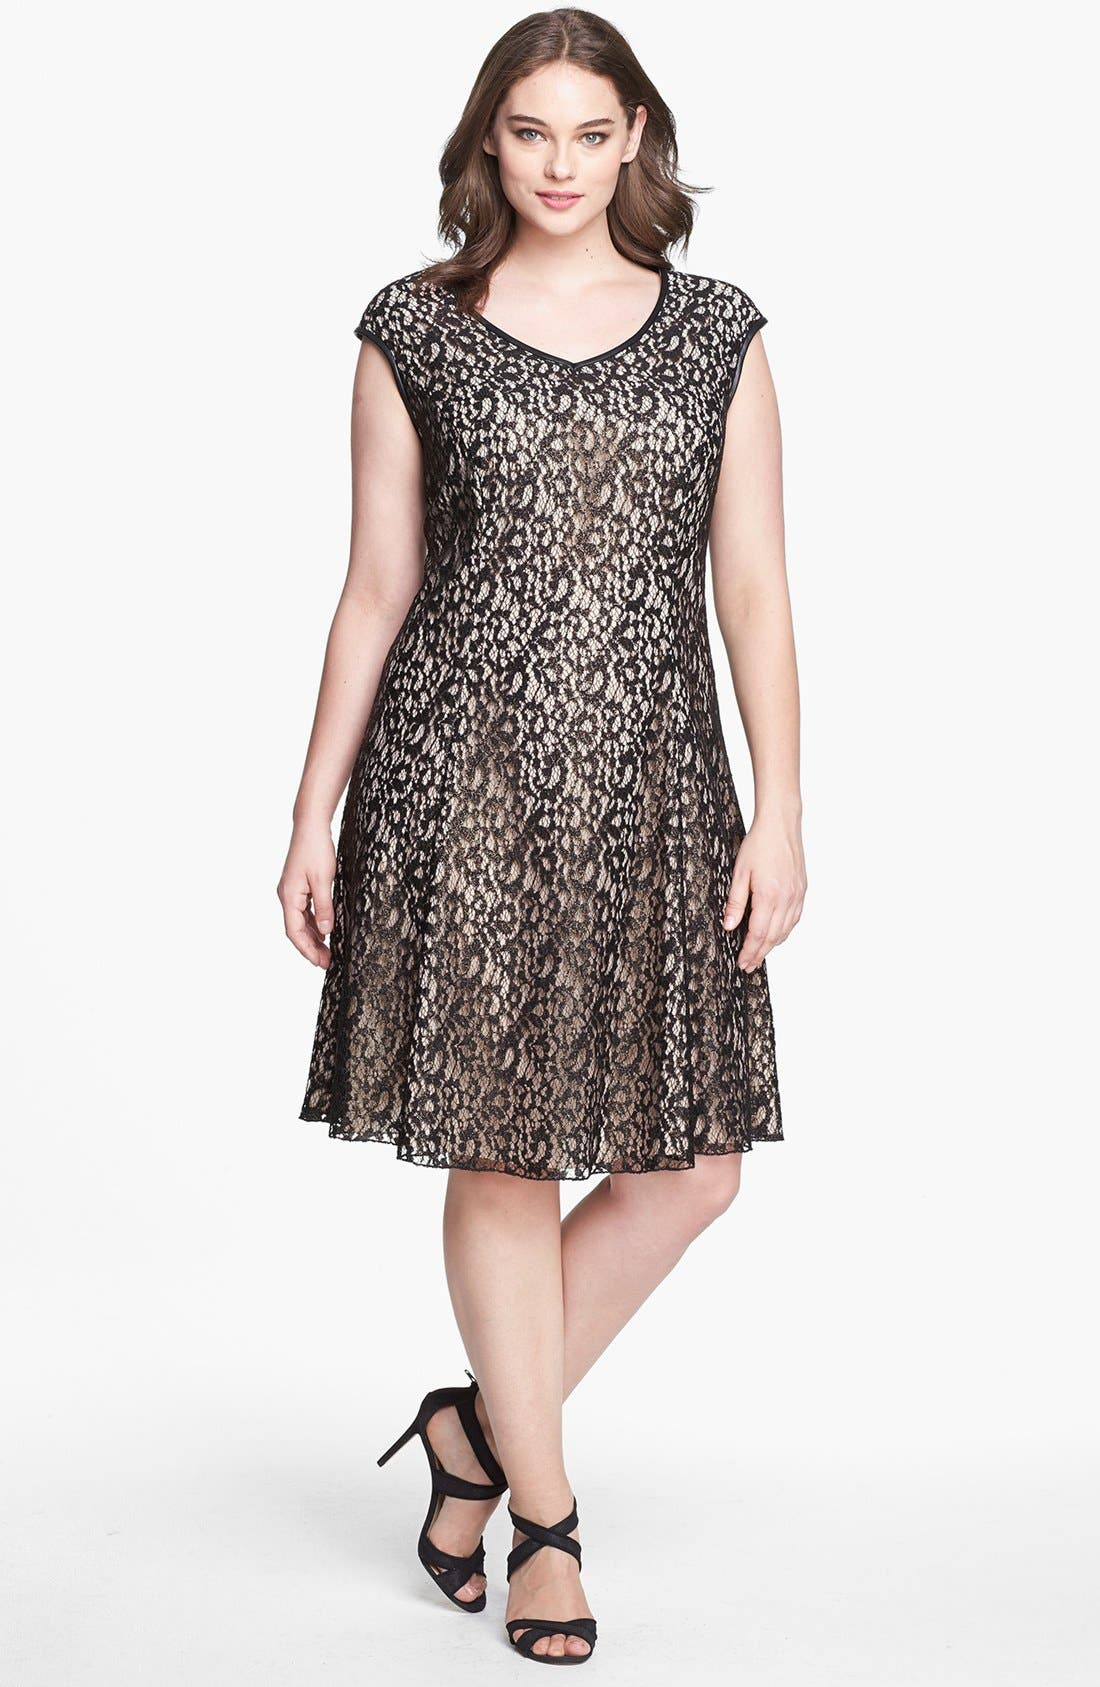 Main Image - ABS by Allen Schwartz Foiled Lace Fit & Flare Dress (Plus Size)